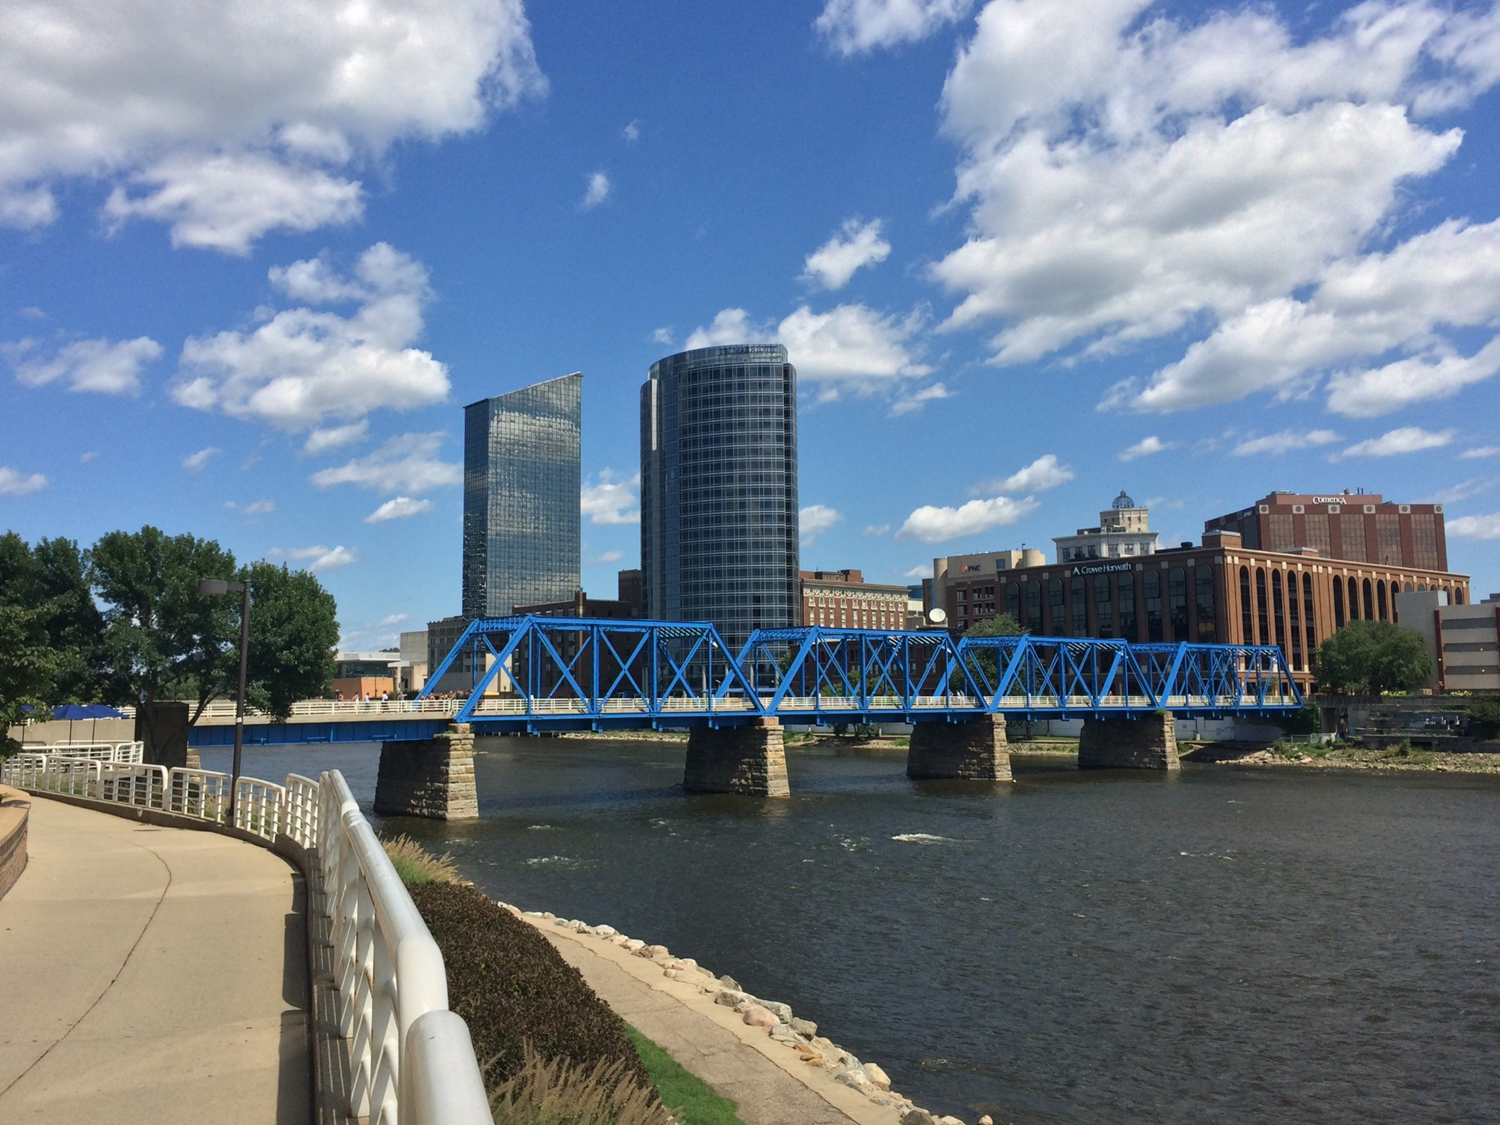 Image Credit: Blue Bridge Downtown Grand Rapids by Steven Depolo via Flickr (CC BY 2.0)